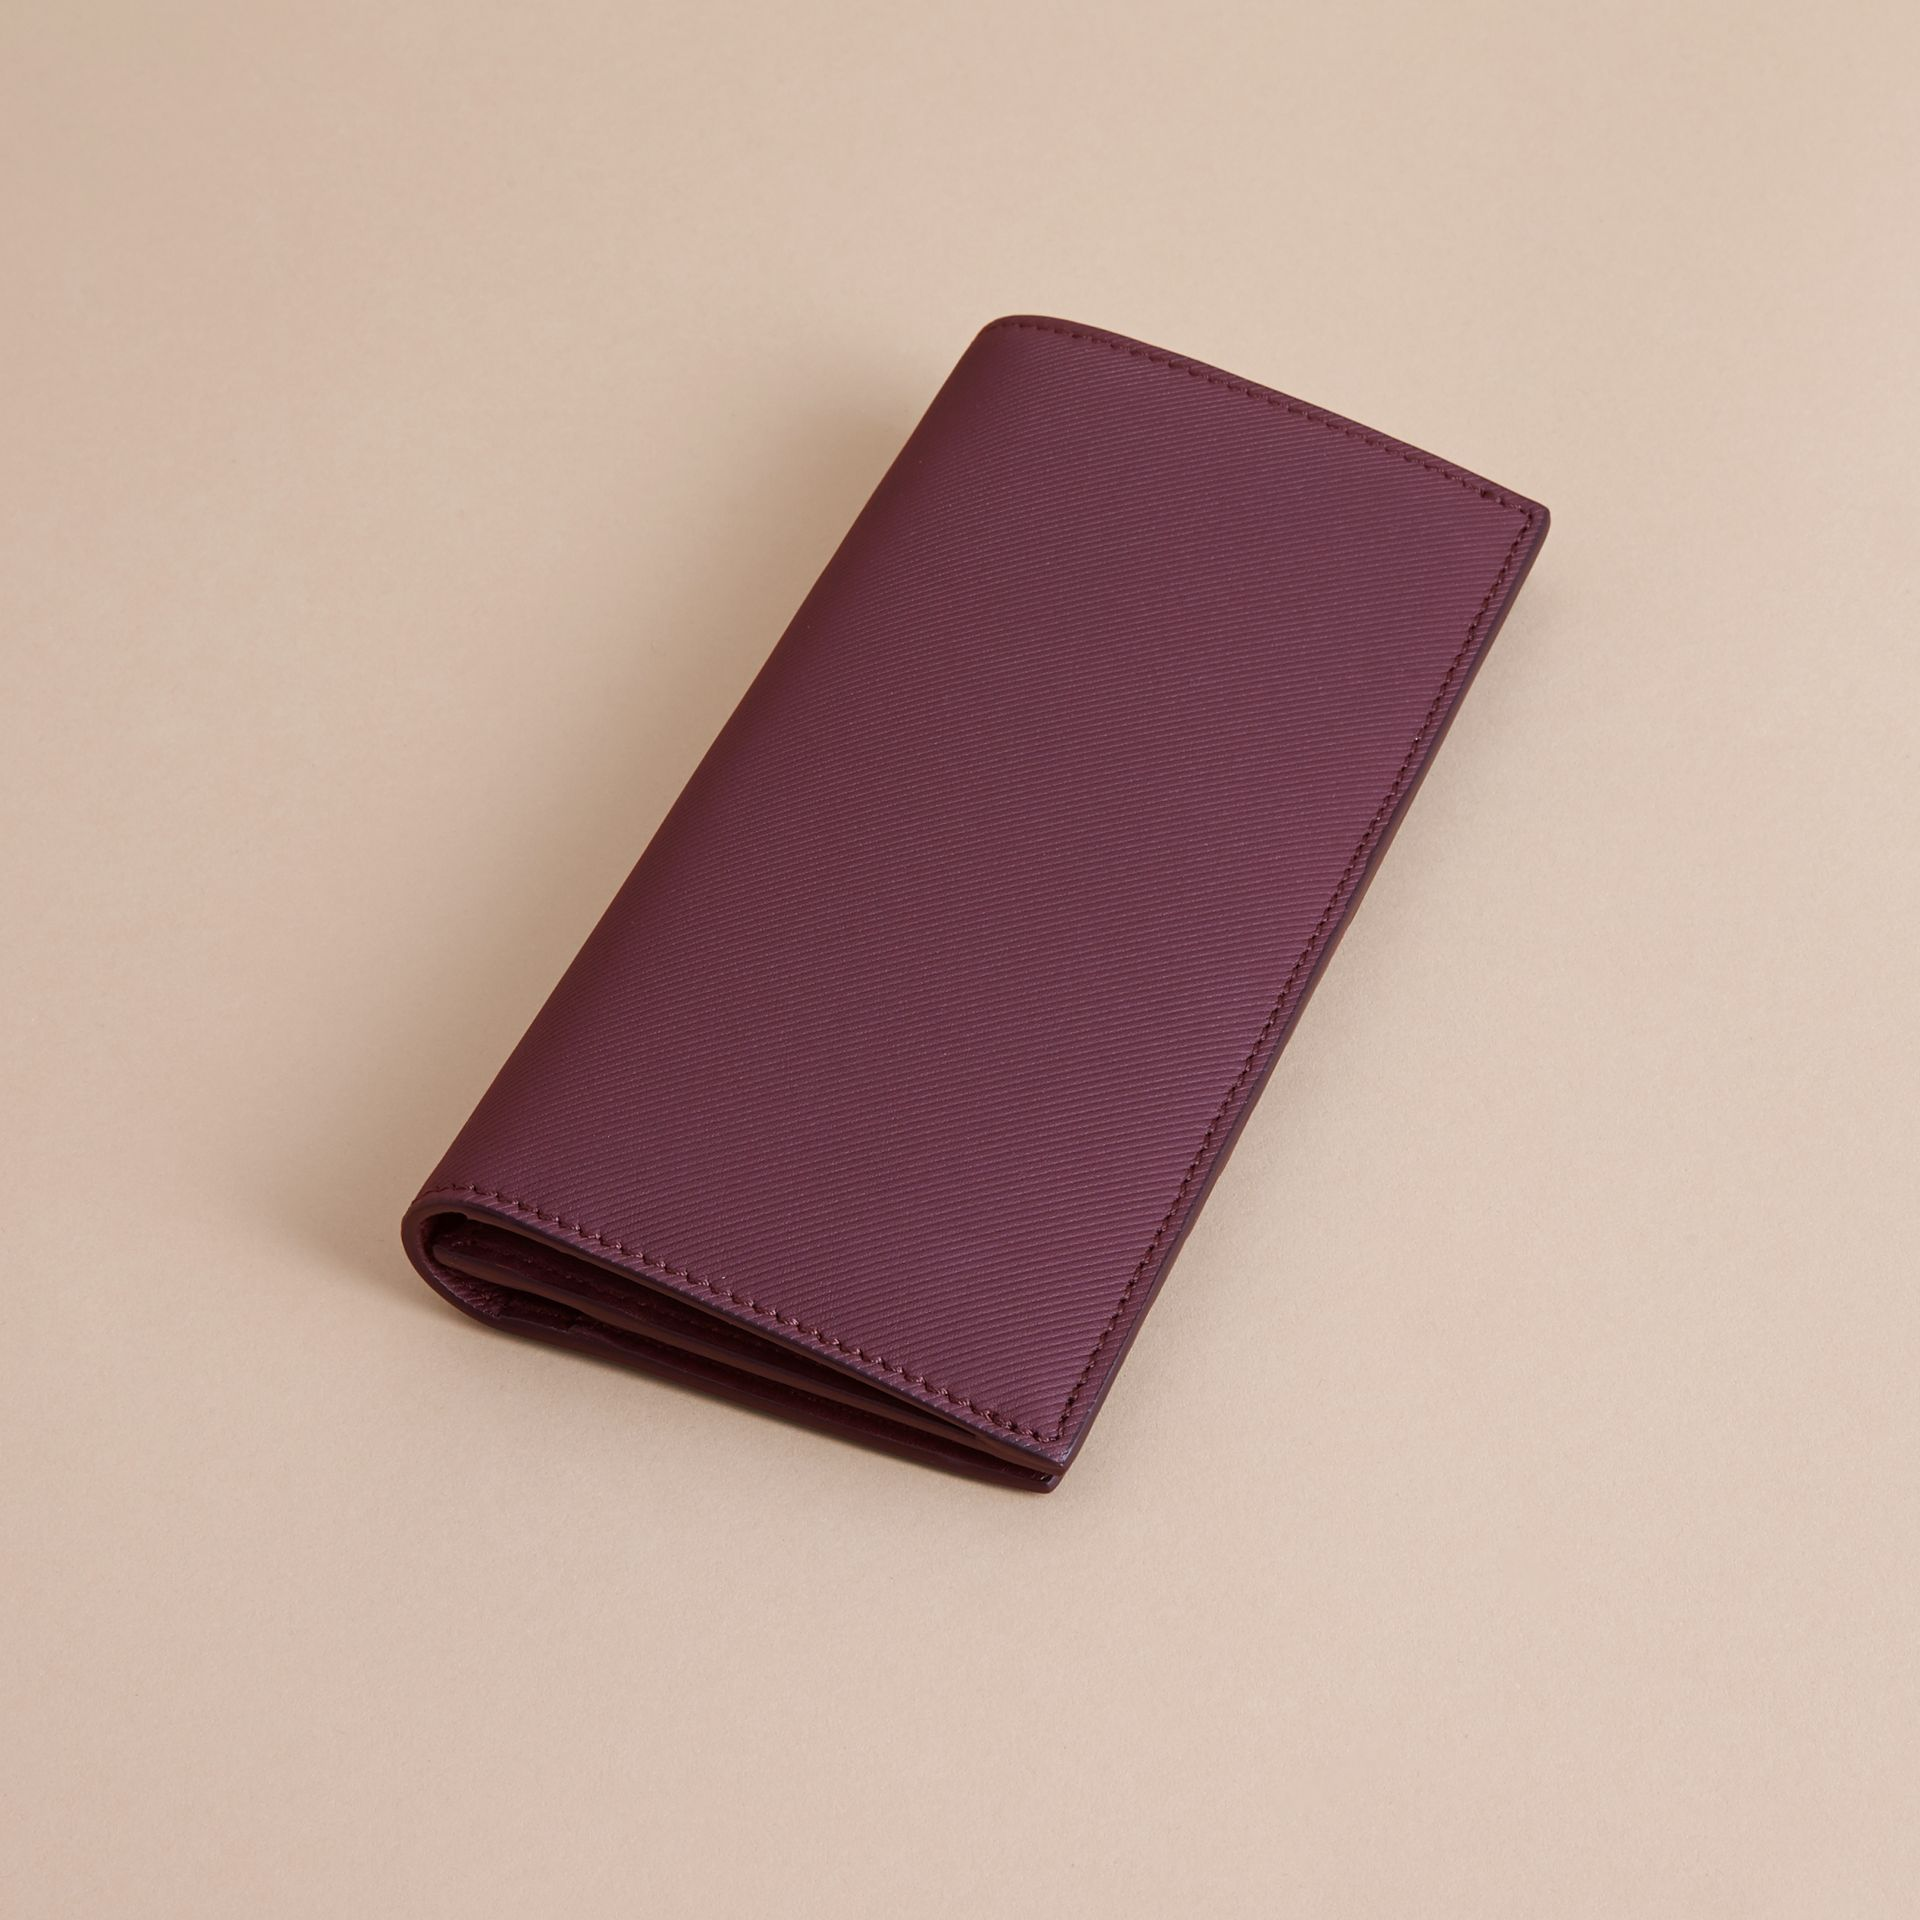 Trench Leather Continental Wallet in Wine - Men | Burberry - gallery image 4